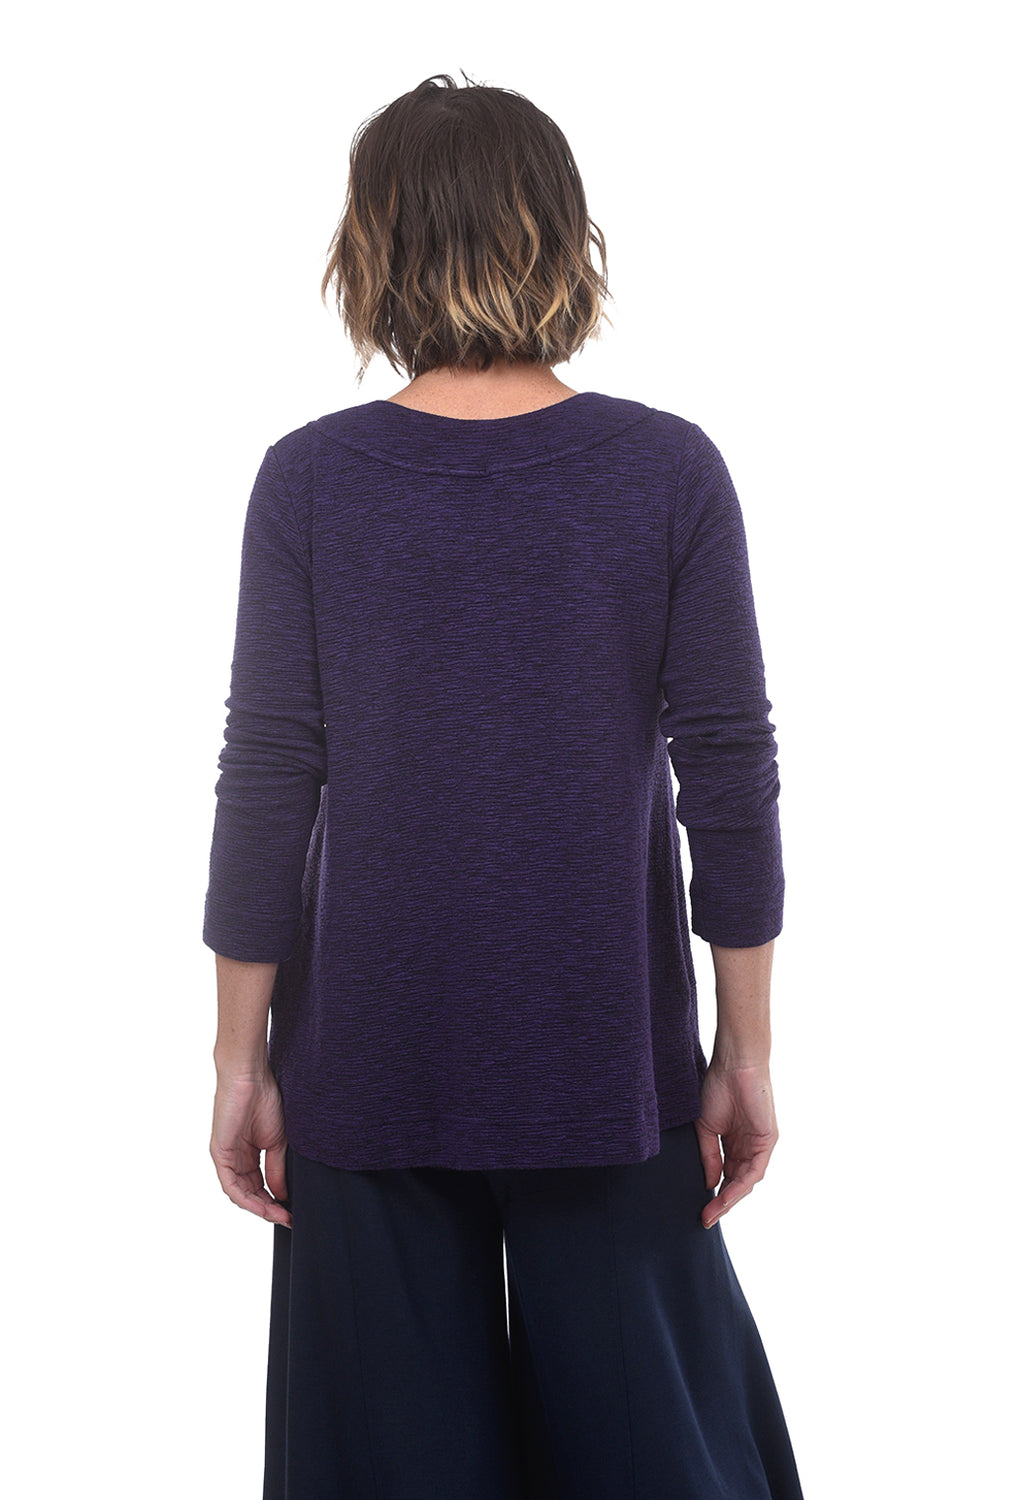 Cut Loose Crimped Pocket Pullover, Dewberry